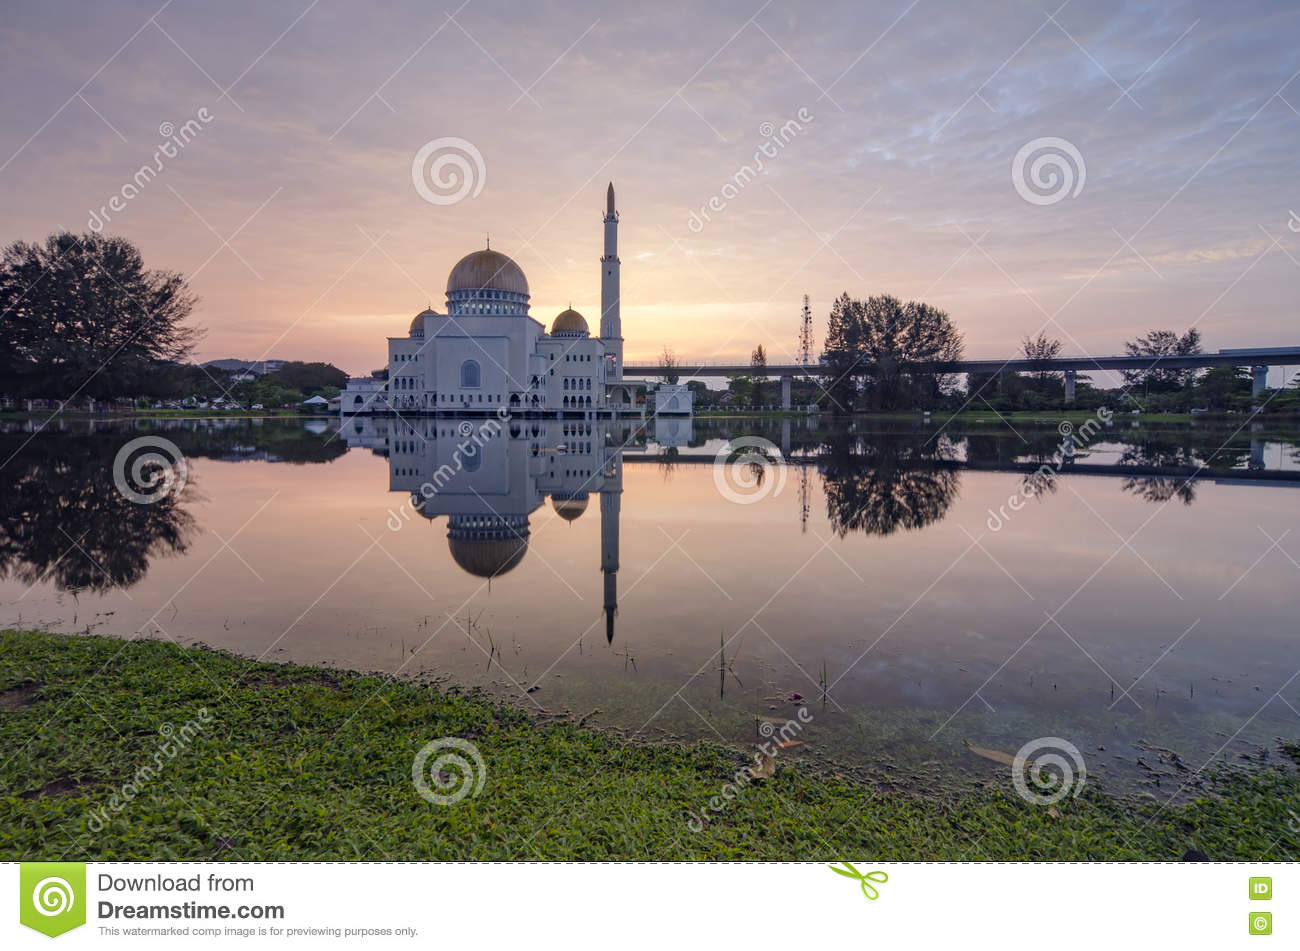 Beautiful sunrise scenery of As-Salam Mosque located in Selangor, Malaysia with reflecton on the lake